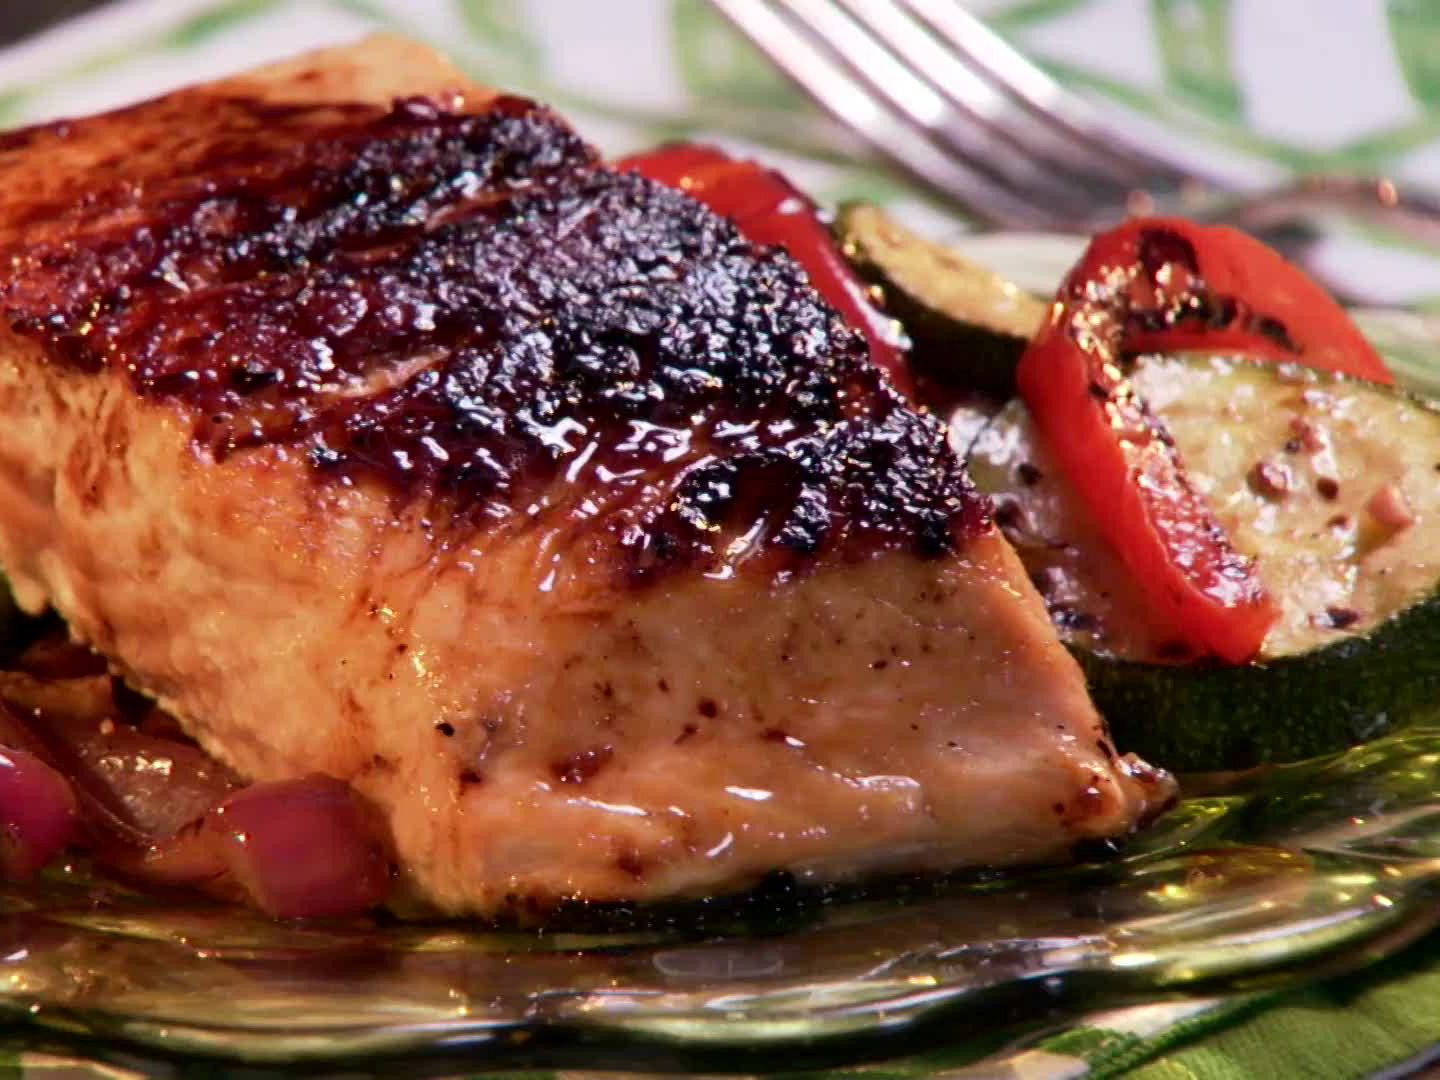 Maple and mustard glazed salmon recipe fish recipes pinterest maple and mustard glazed salmon recipe fish recipes pinterest glazed salmon paula deen and mustard forumfinder Images